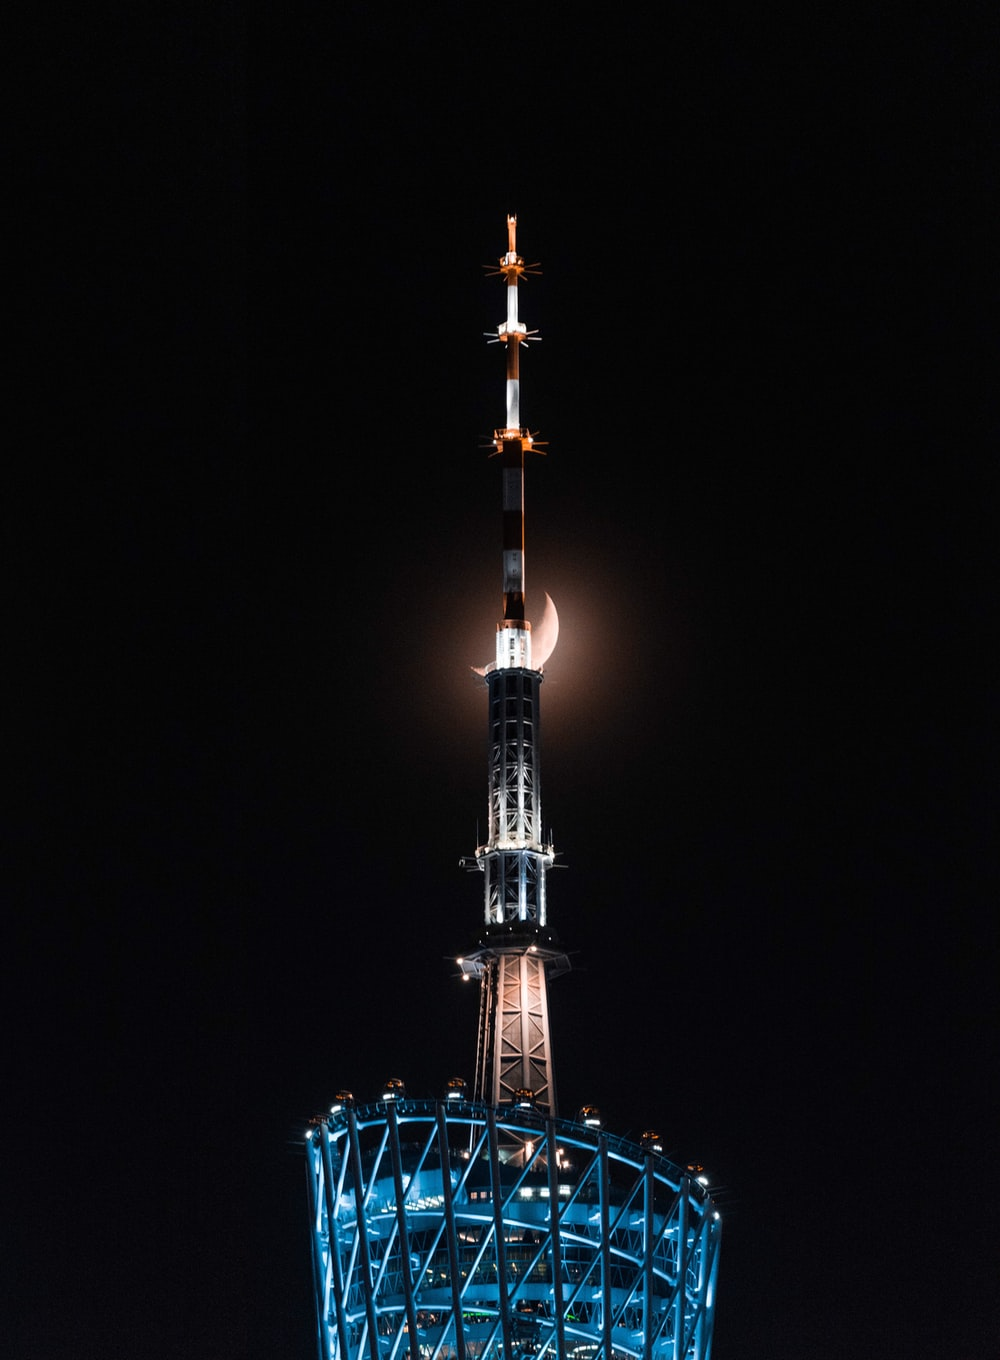 black and white tower during night time